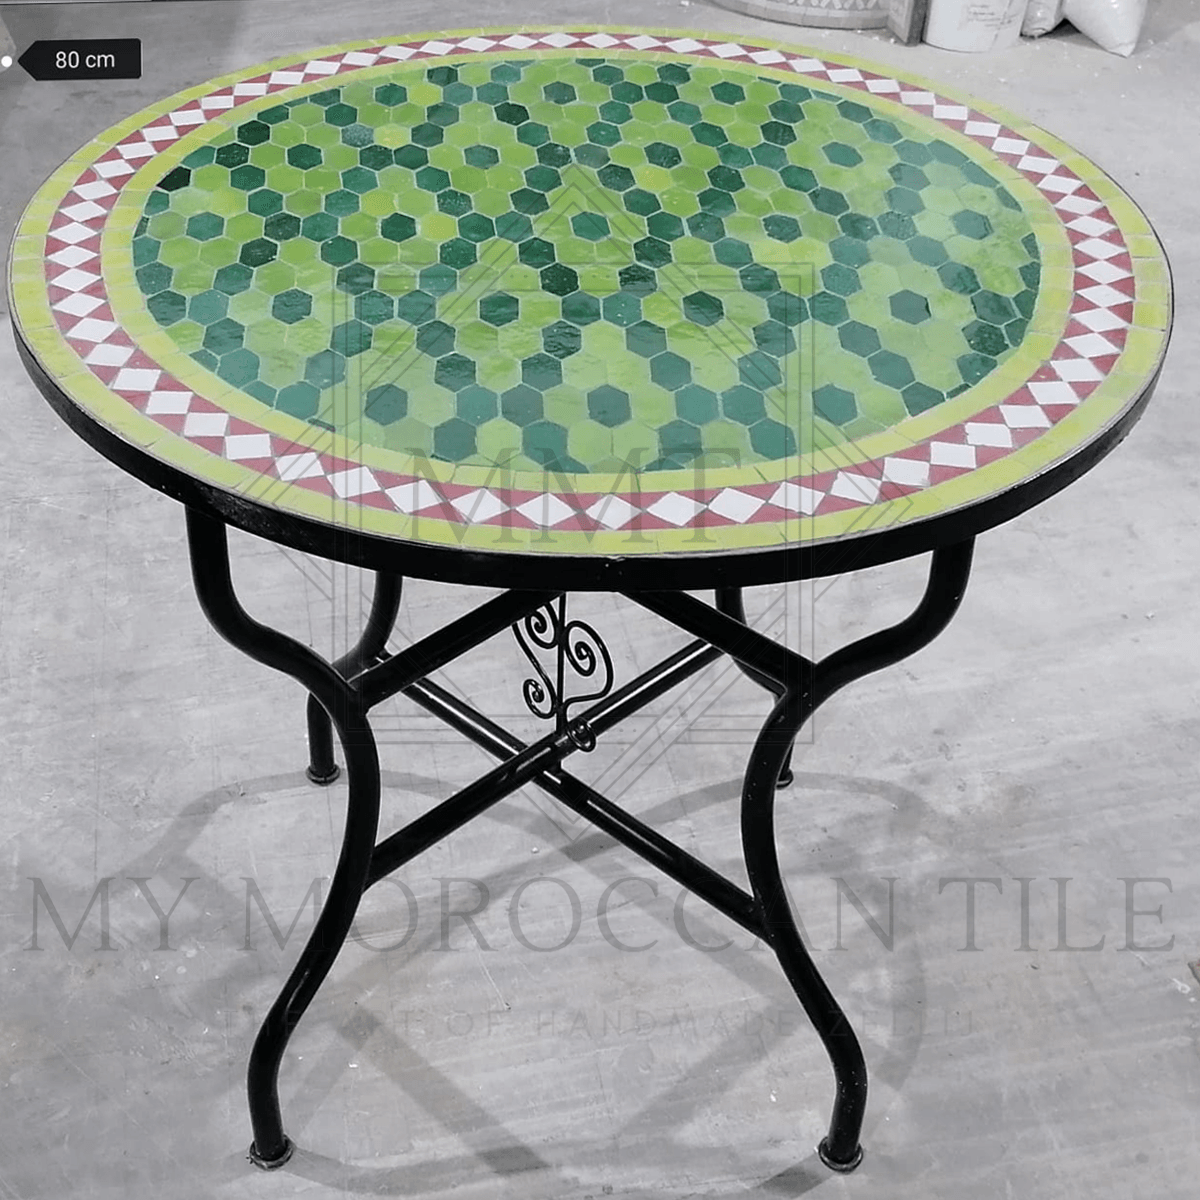 Handmade Moroccan Mosaic Table 2106-07